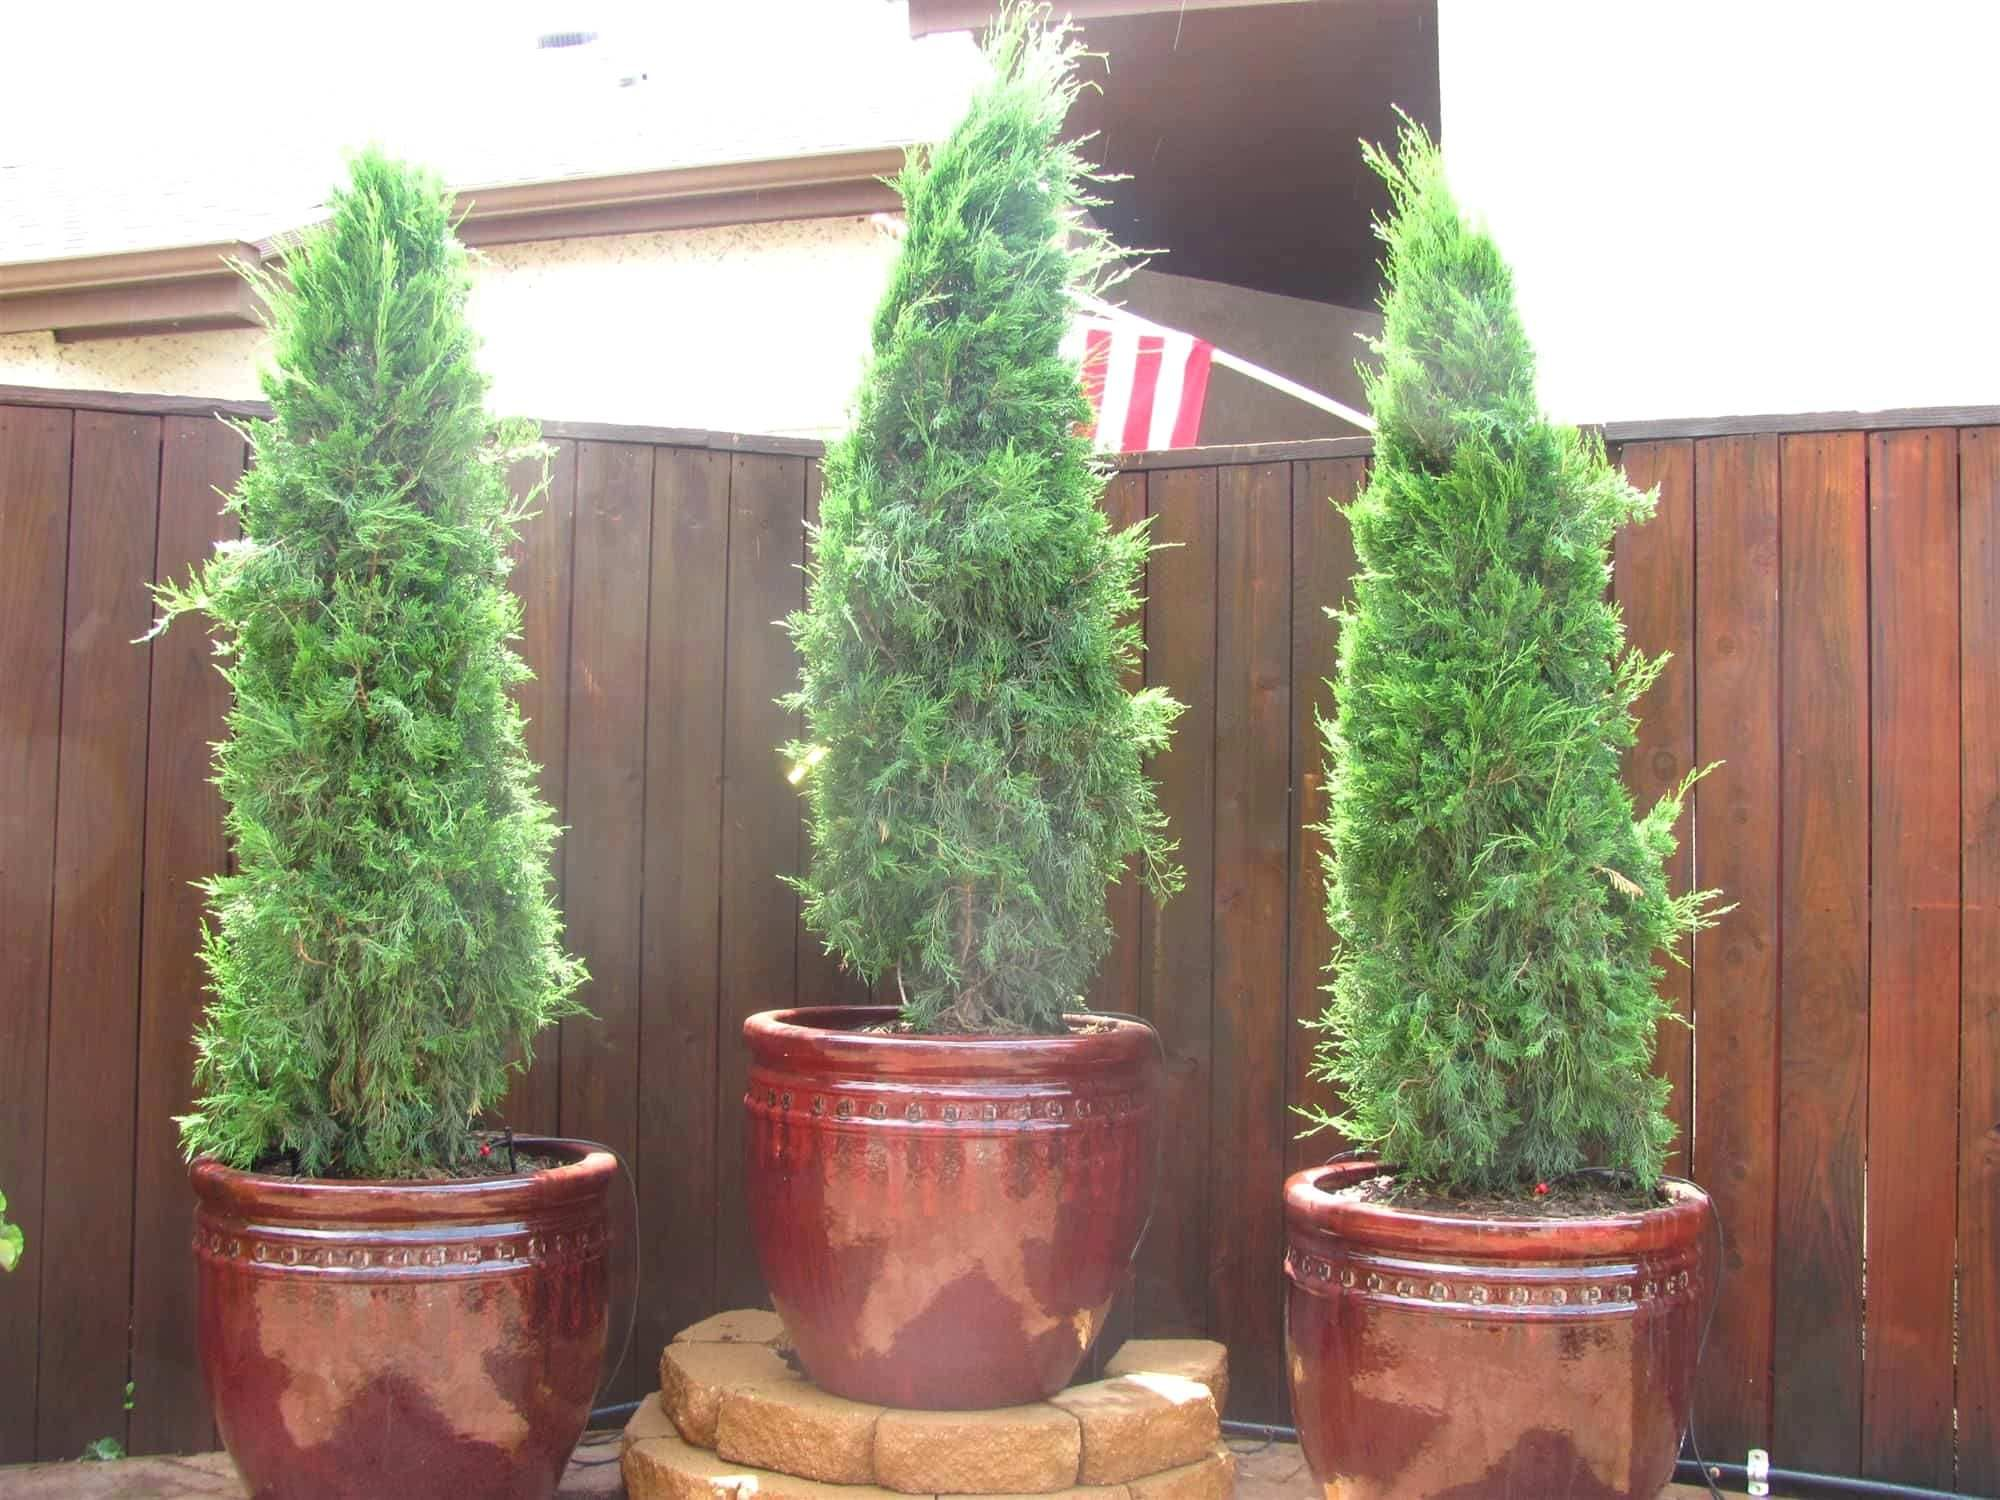 Potted Trees For Privacy On Patio Google Search Evergreen